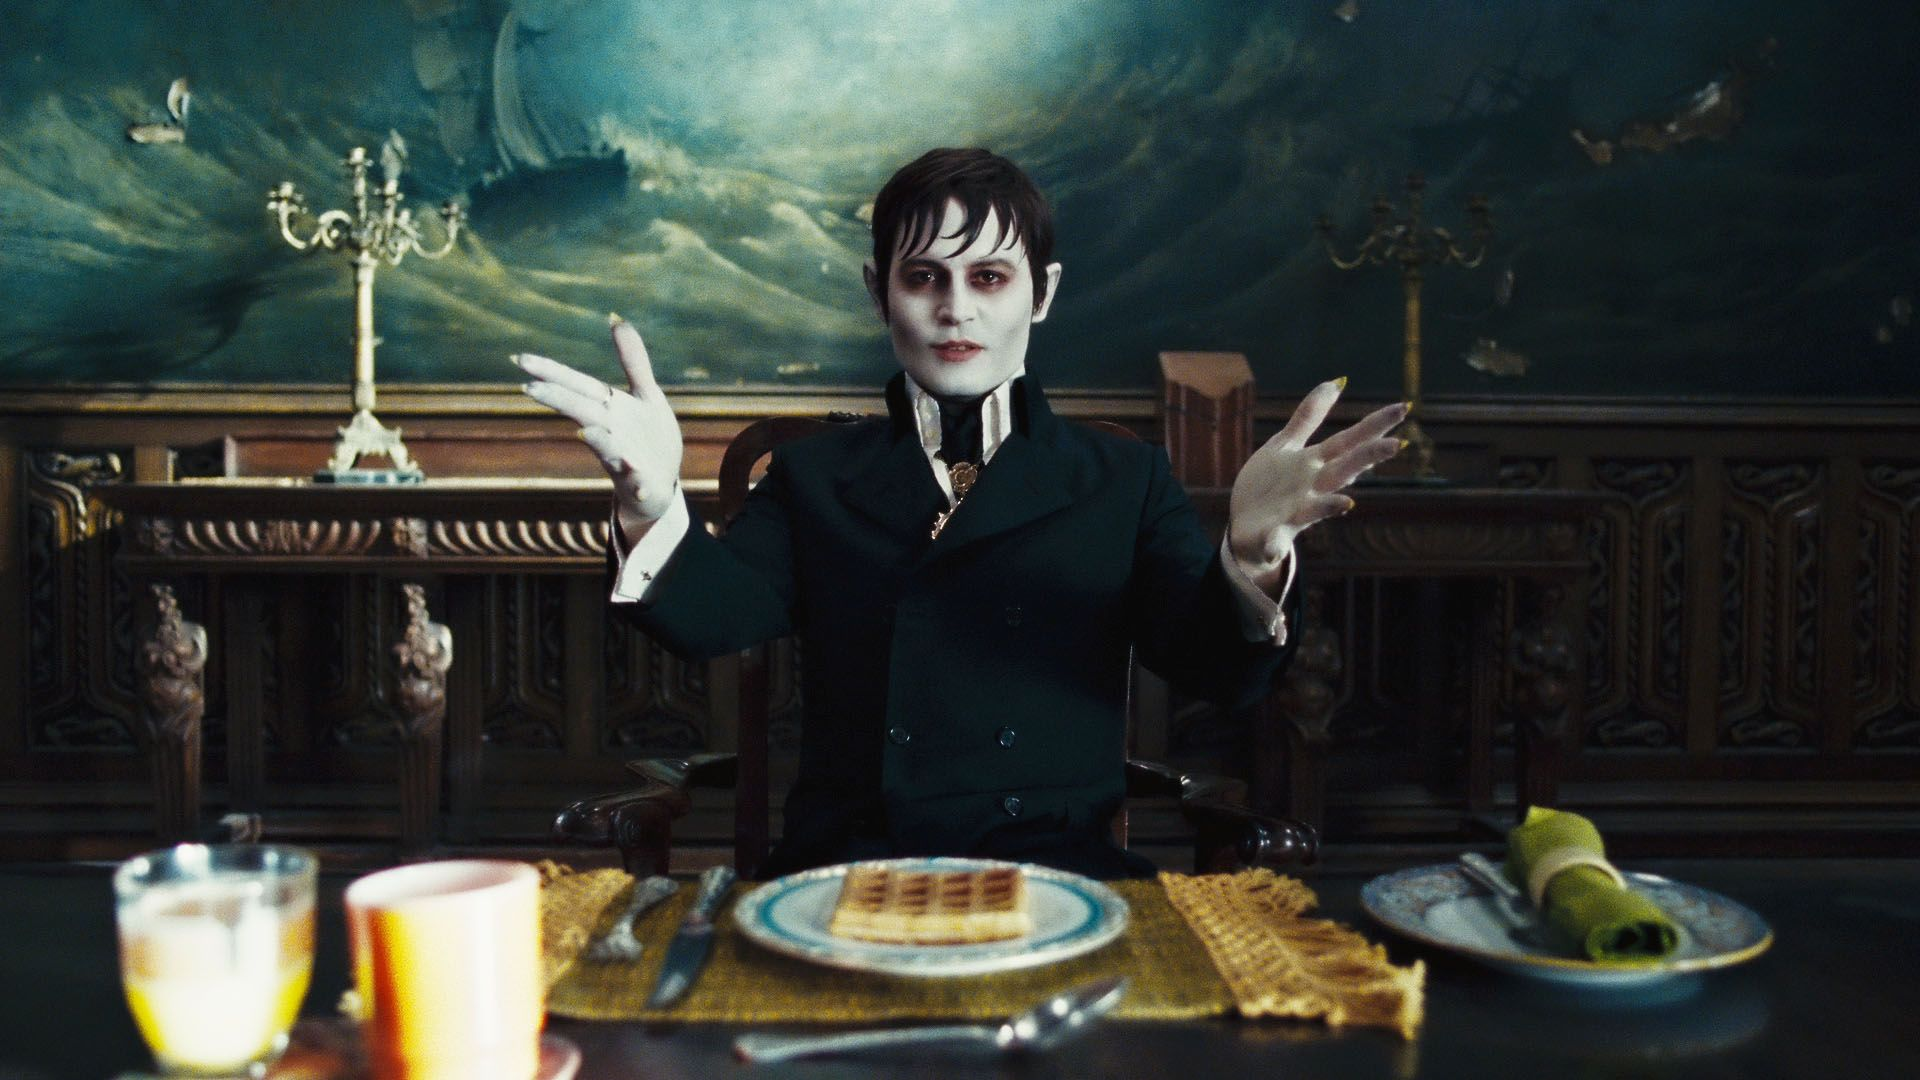 Dark shadows movie images featuring johnny depp collider dark shadows image johnny depp publicscrutiny Image collections